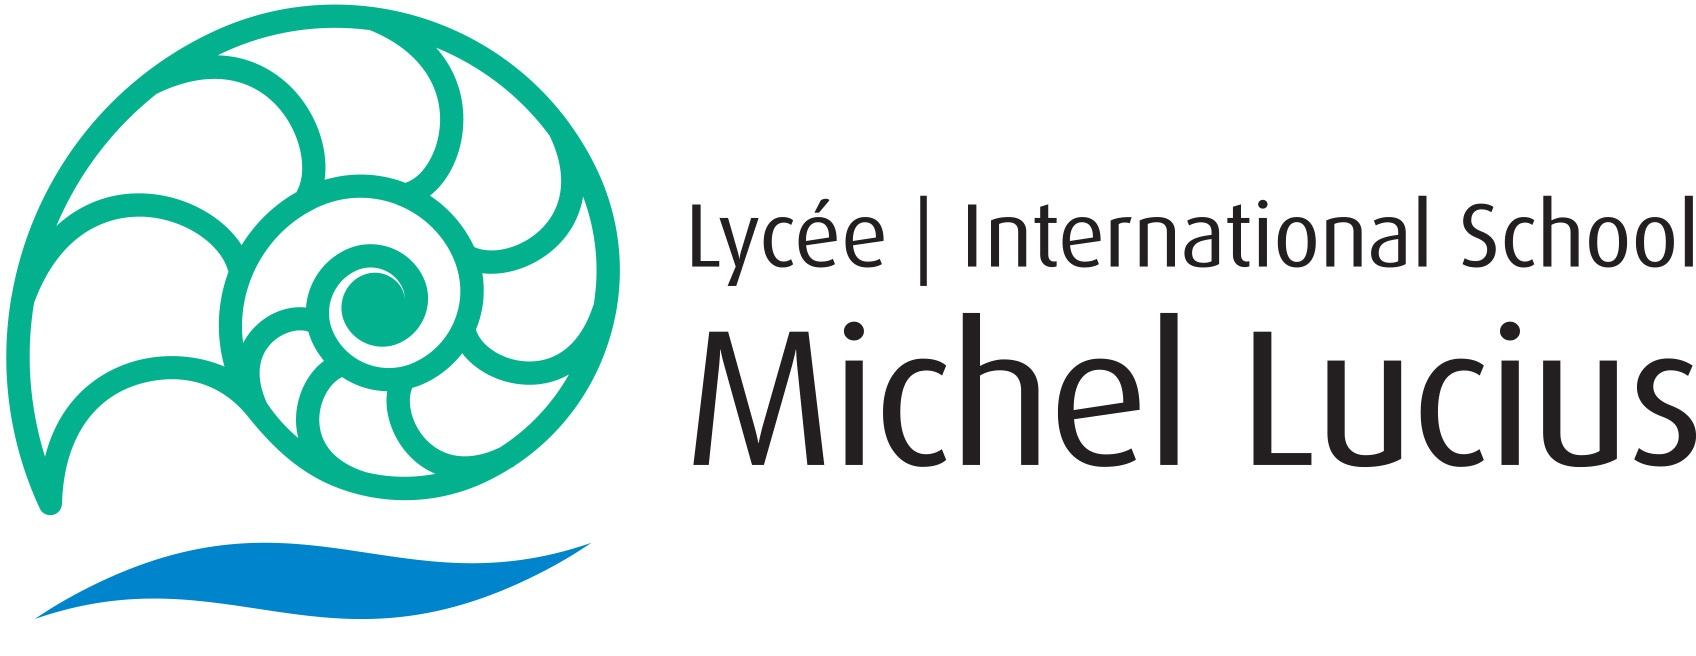 Lycée - International School Michel Lucius